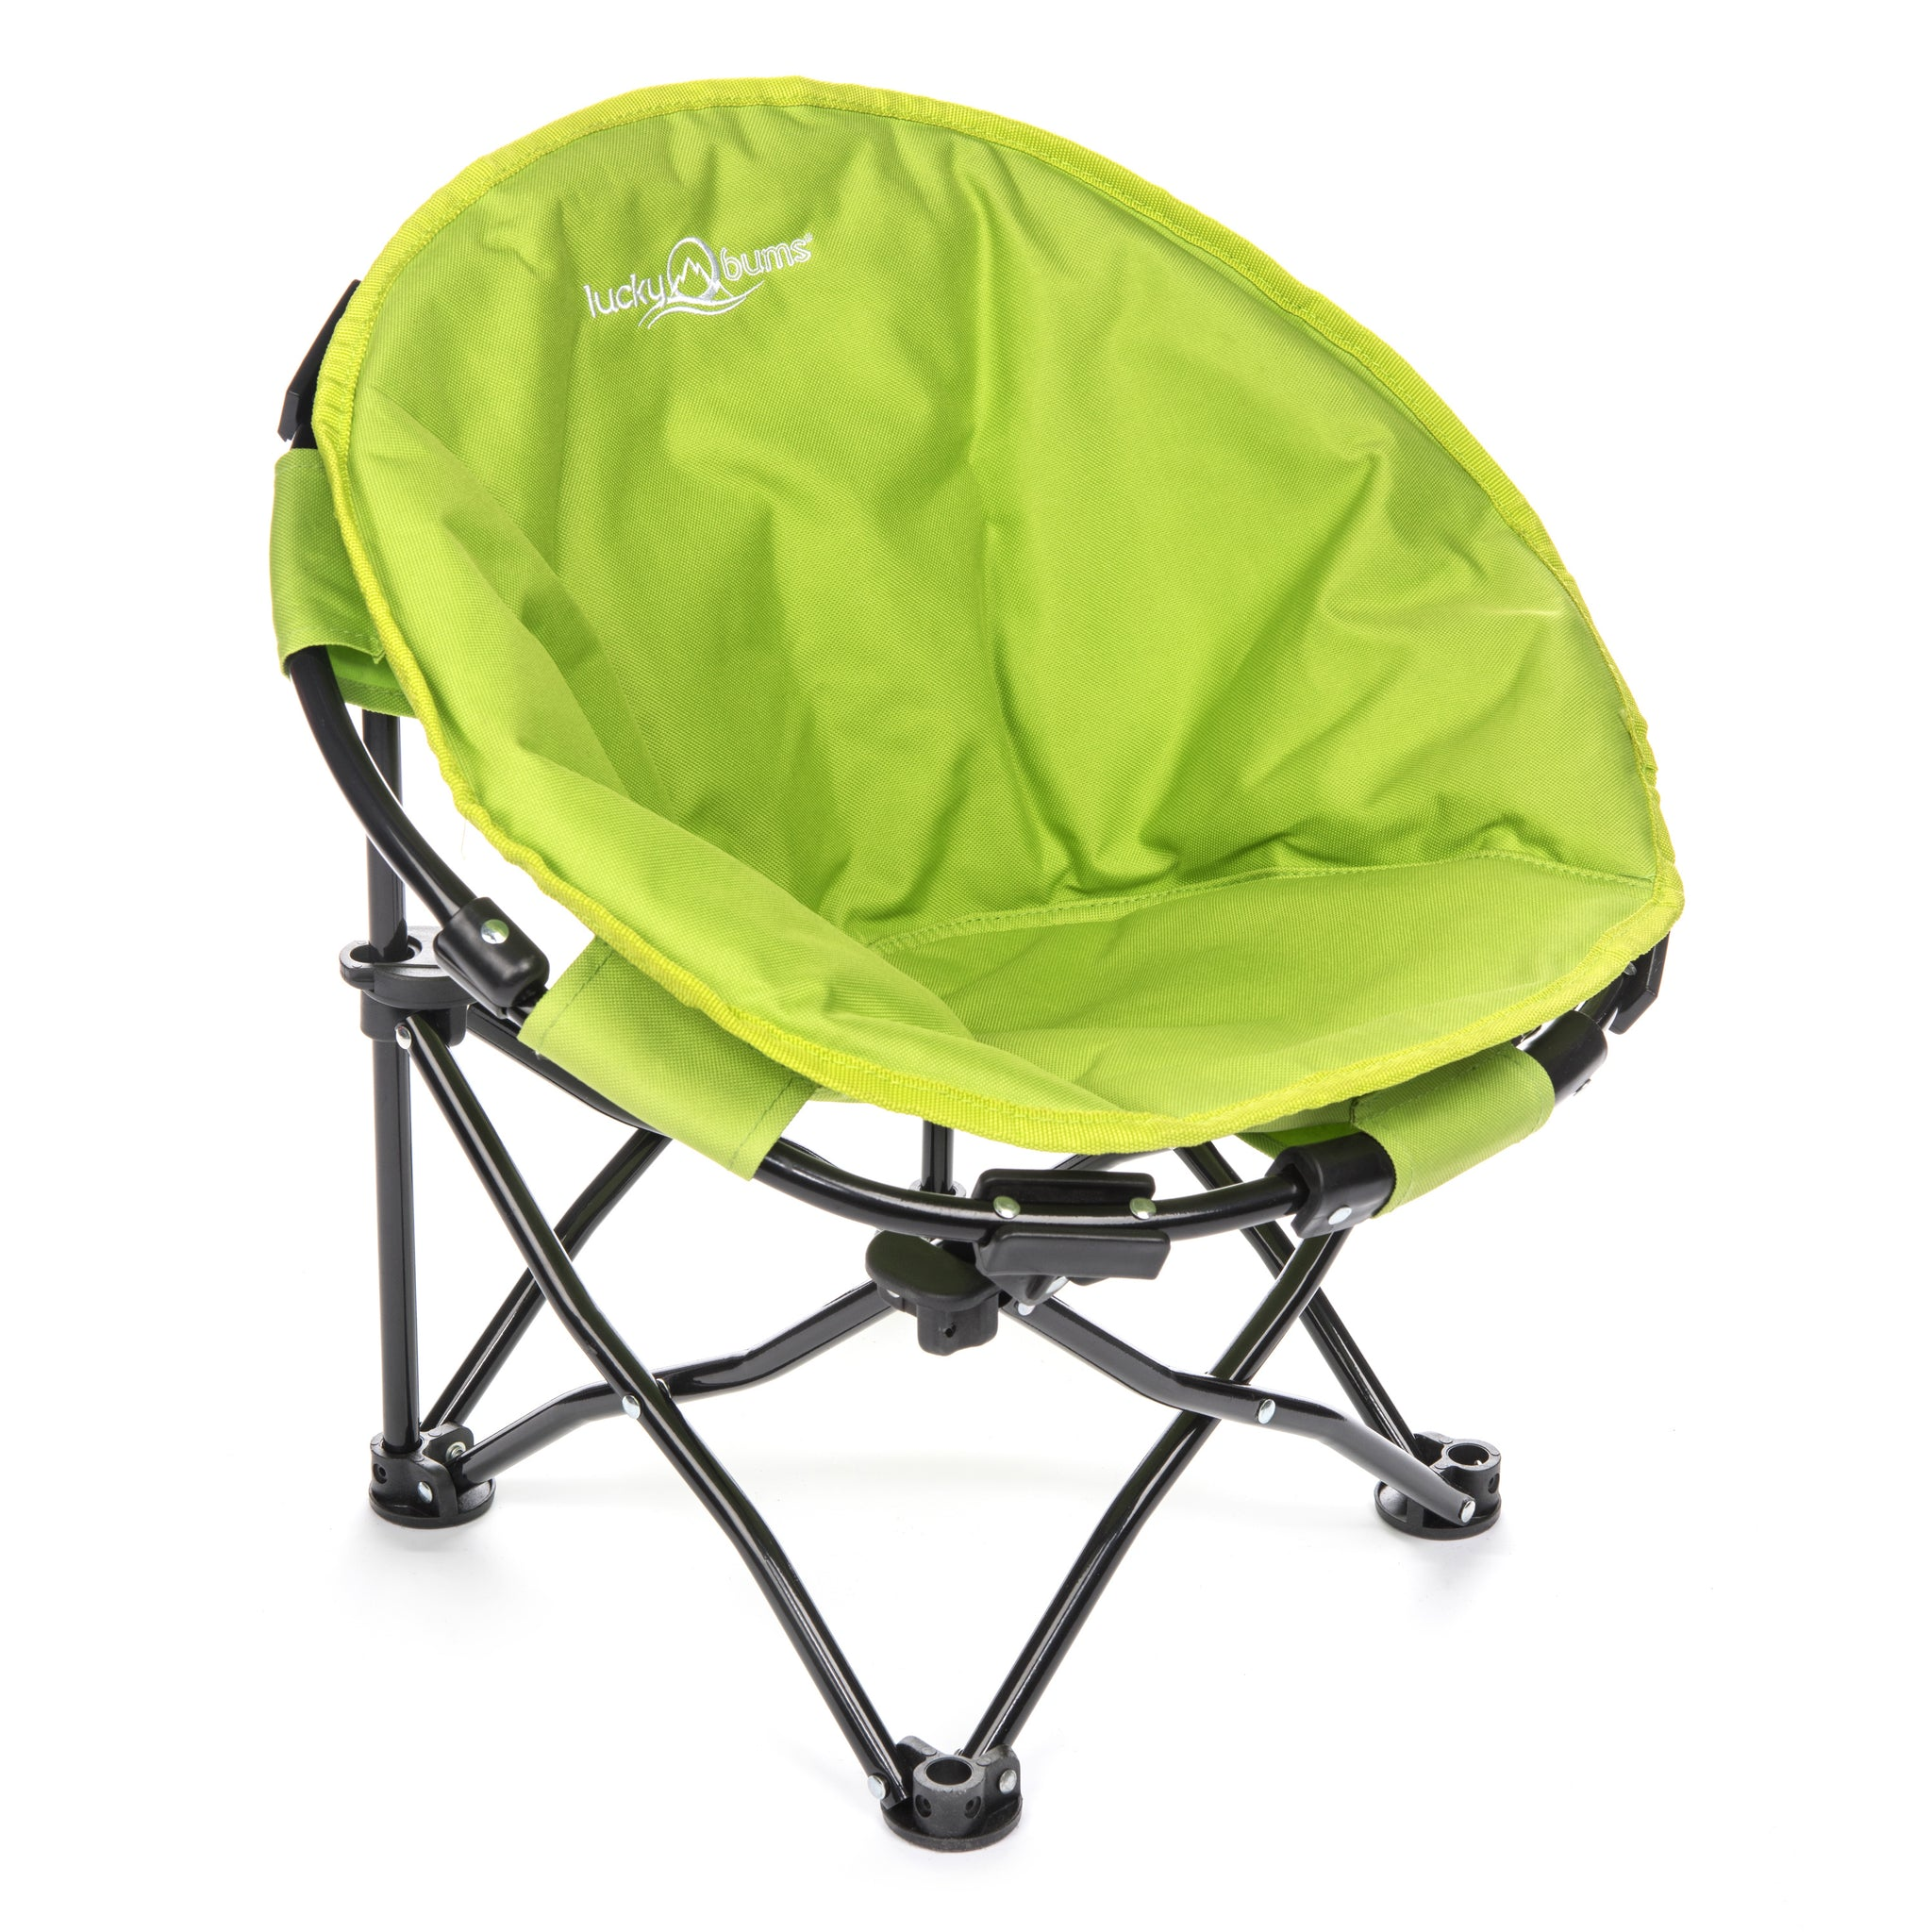 Fabulous Kids Moon Camp Chair Lucky Bums Pdpeps Interior Chair Design Pdpepsorg